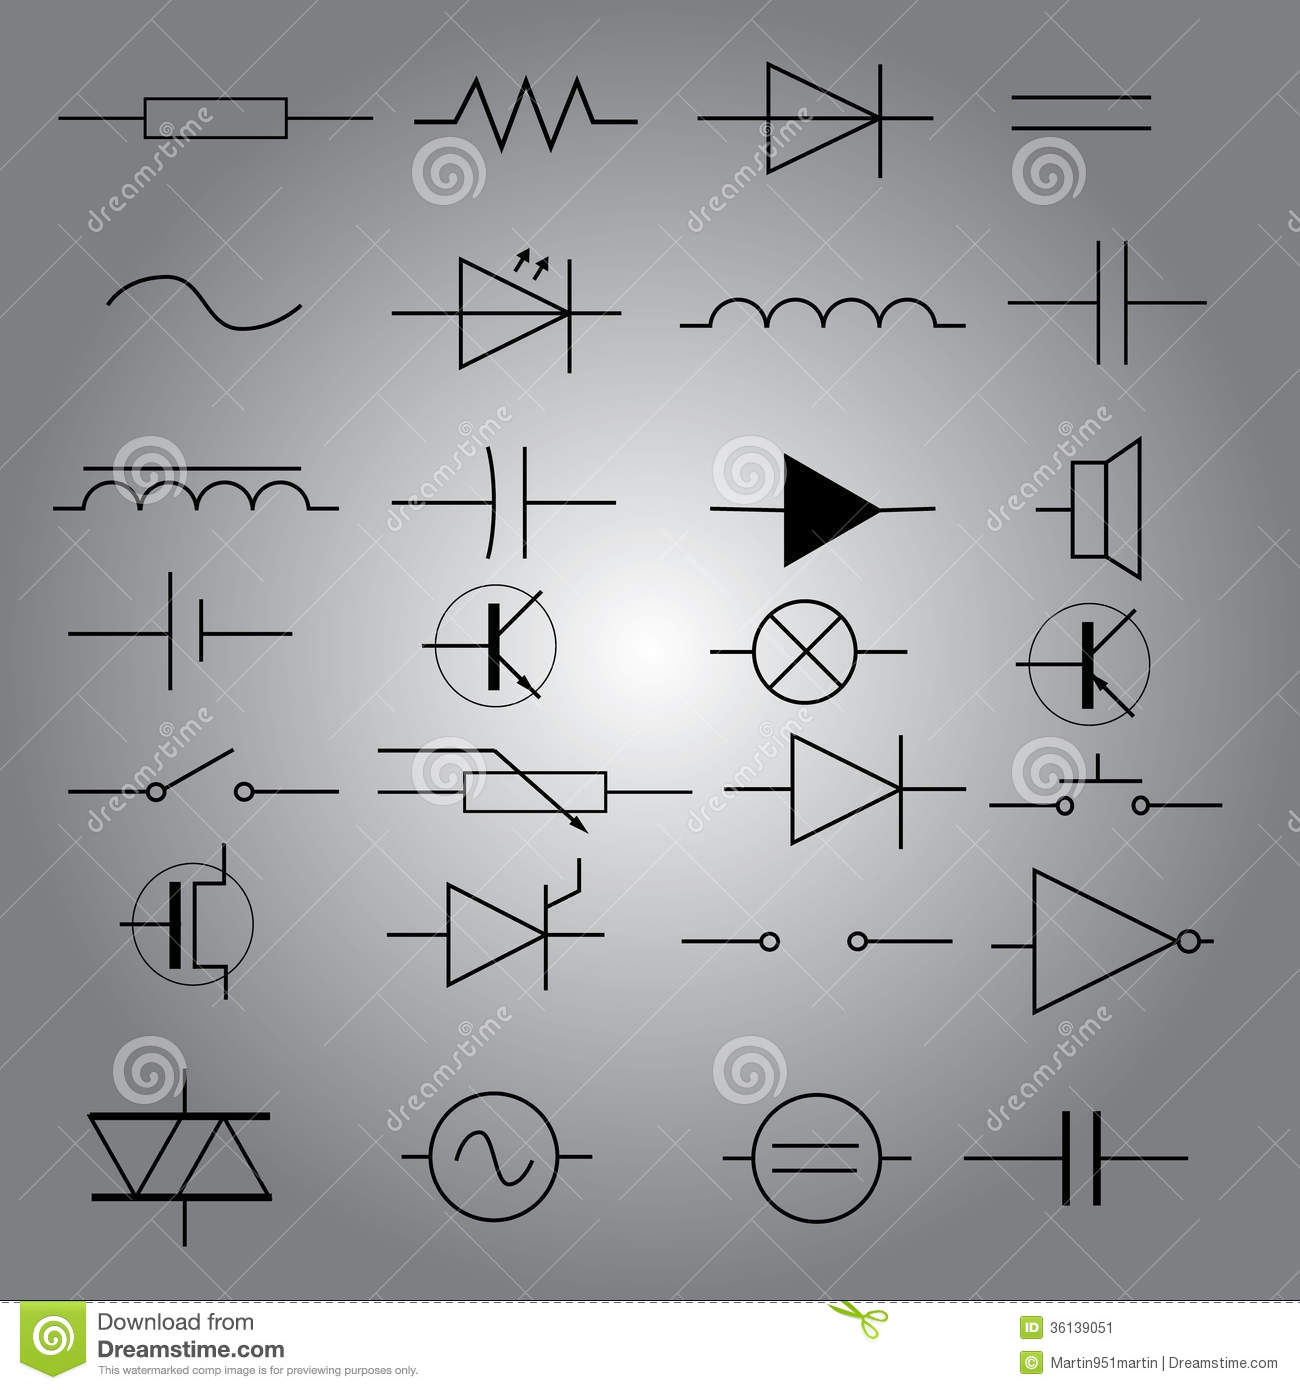 Electrical Engineering Symbols